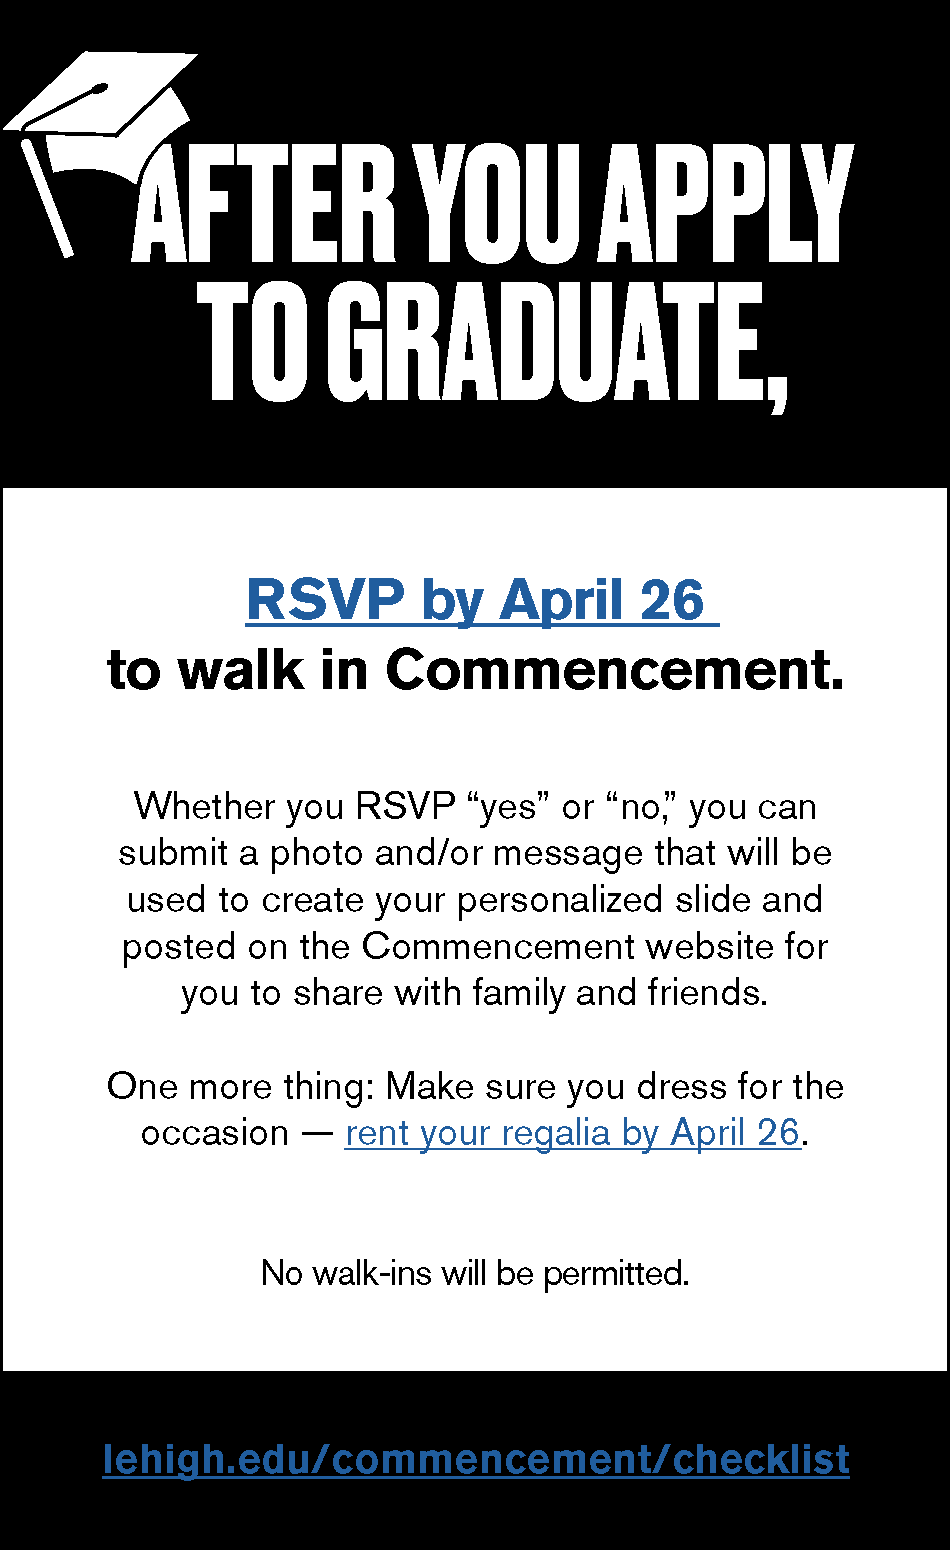 After you apply to graduate, RSVP by April 26 to walk in Commencement. Click here to see the graduation checklist